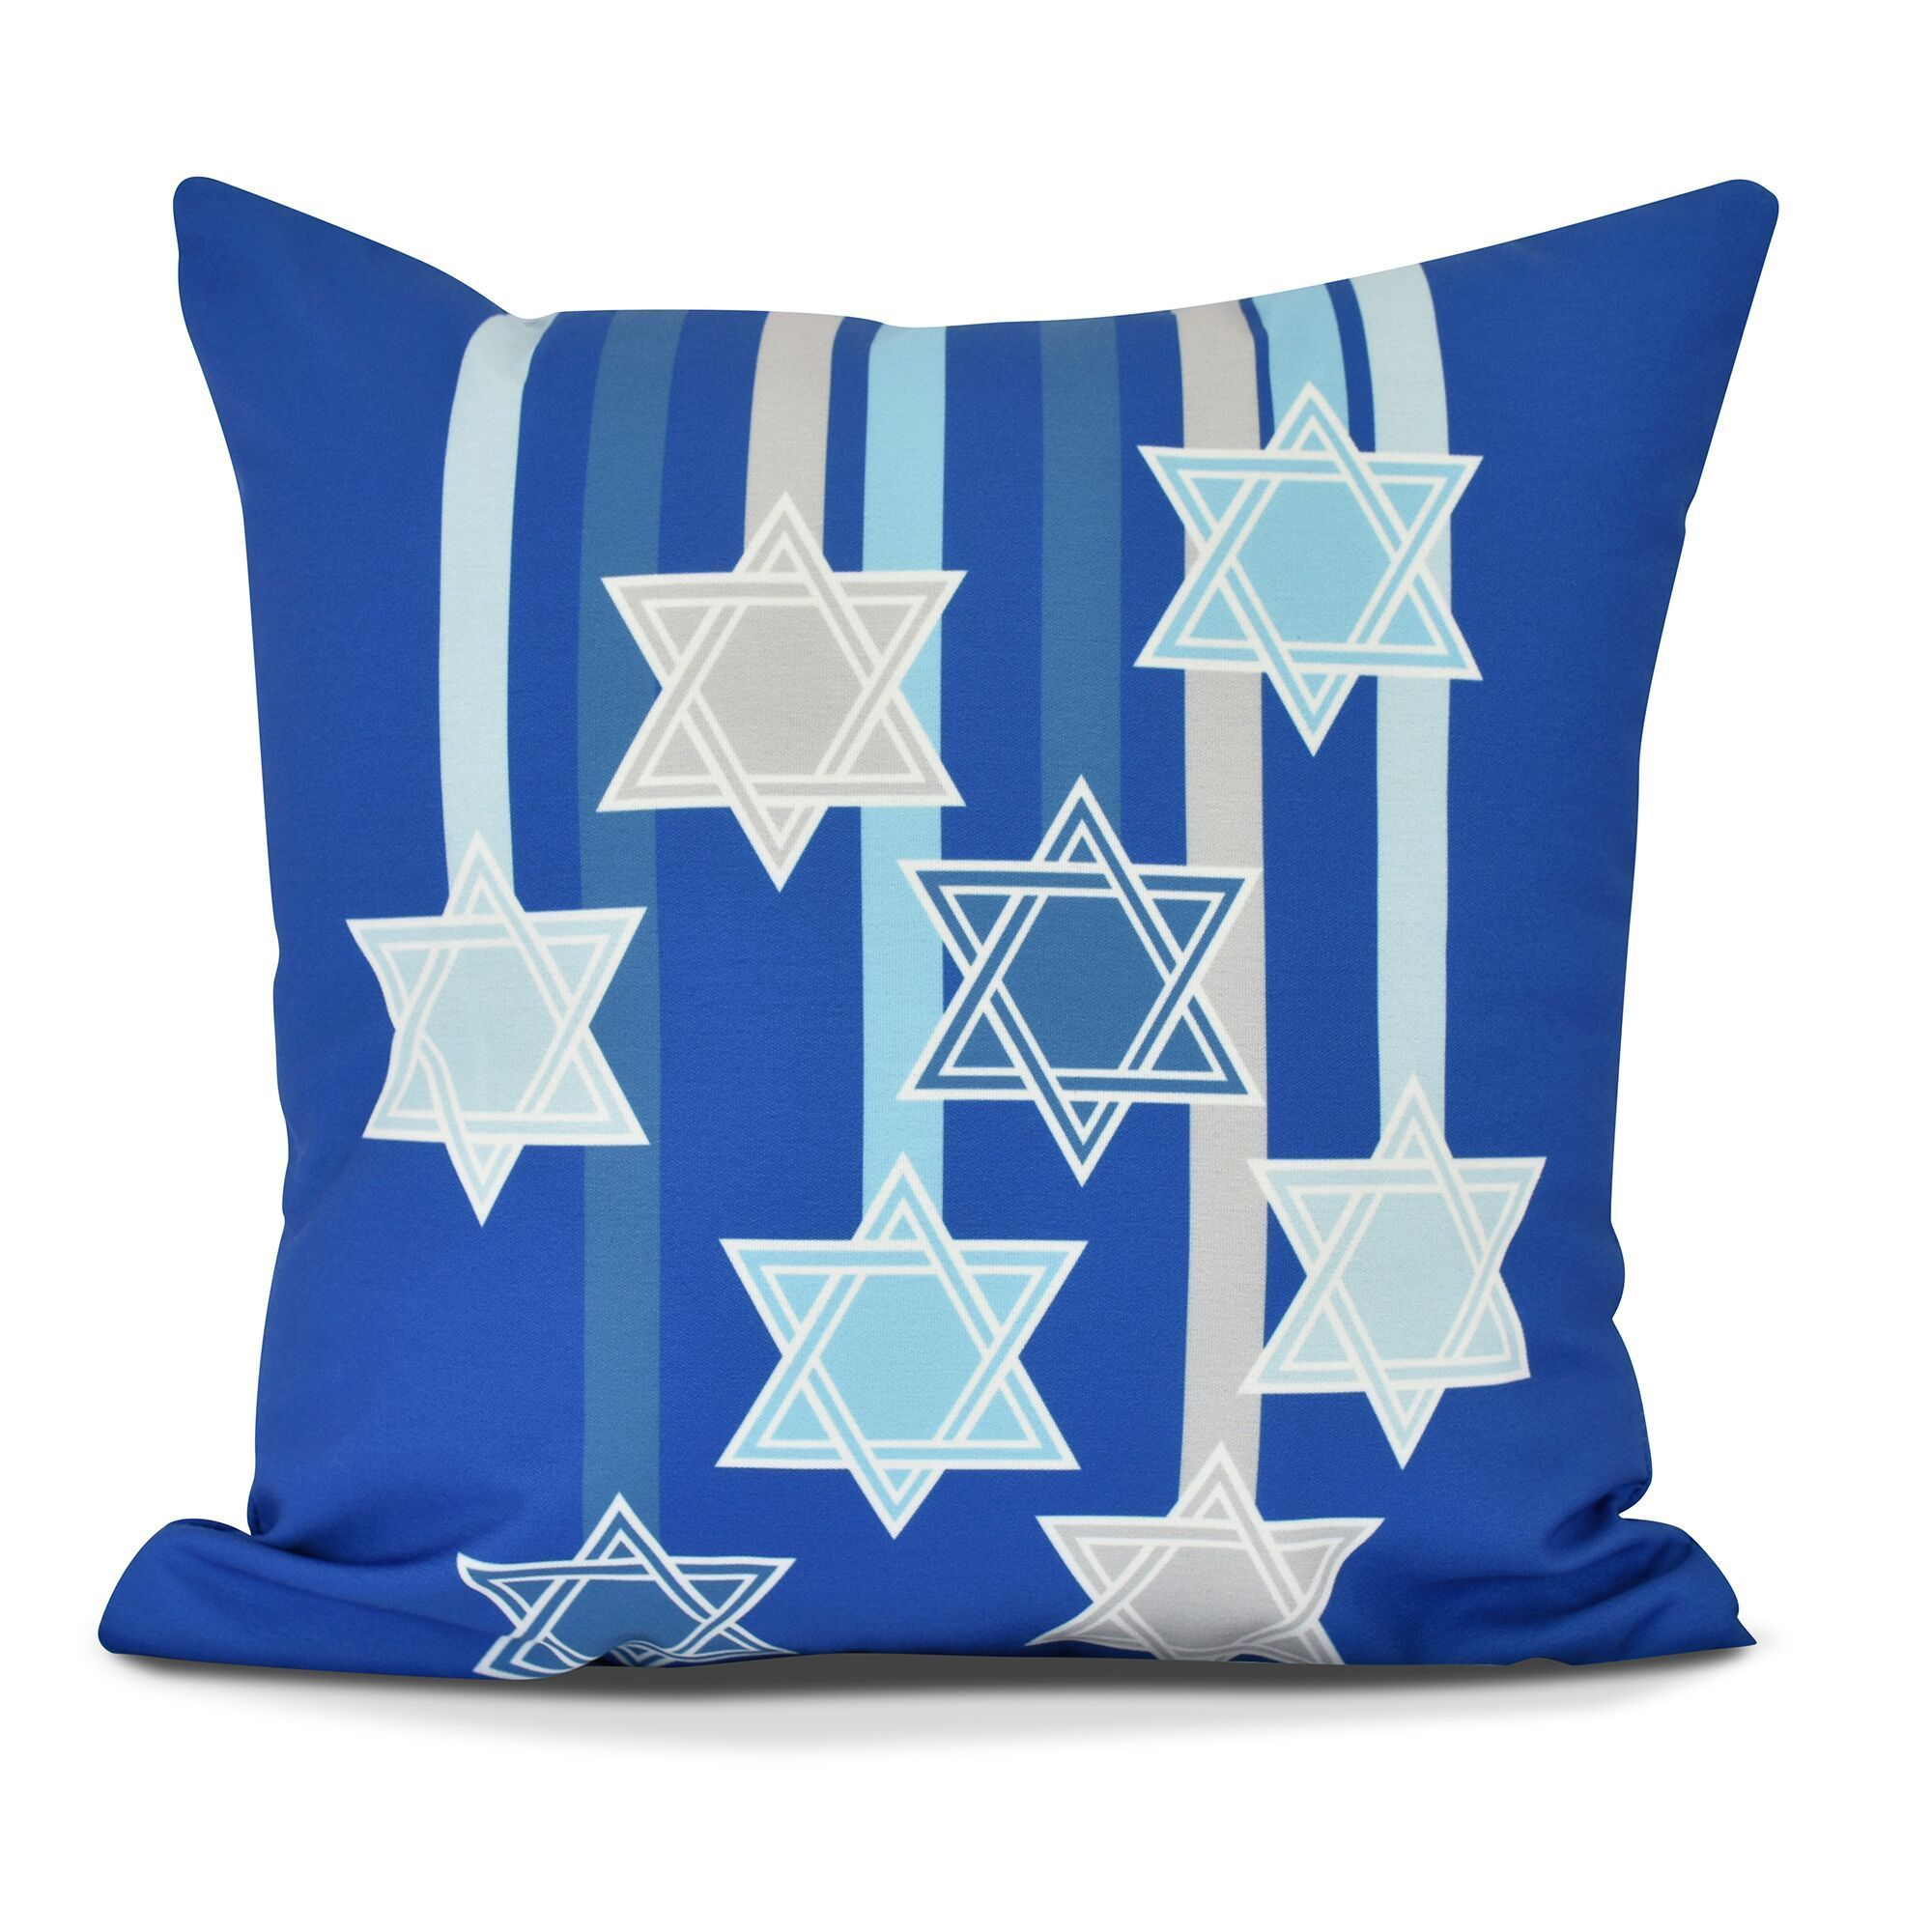 Shooting Stars, Geometric Print Pillow (Medium - Blue - 16 x 16)